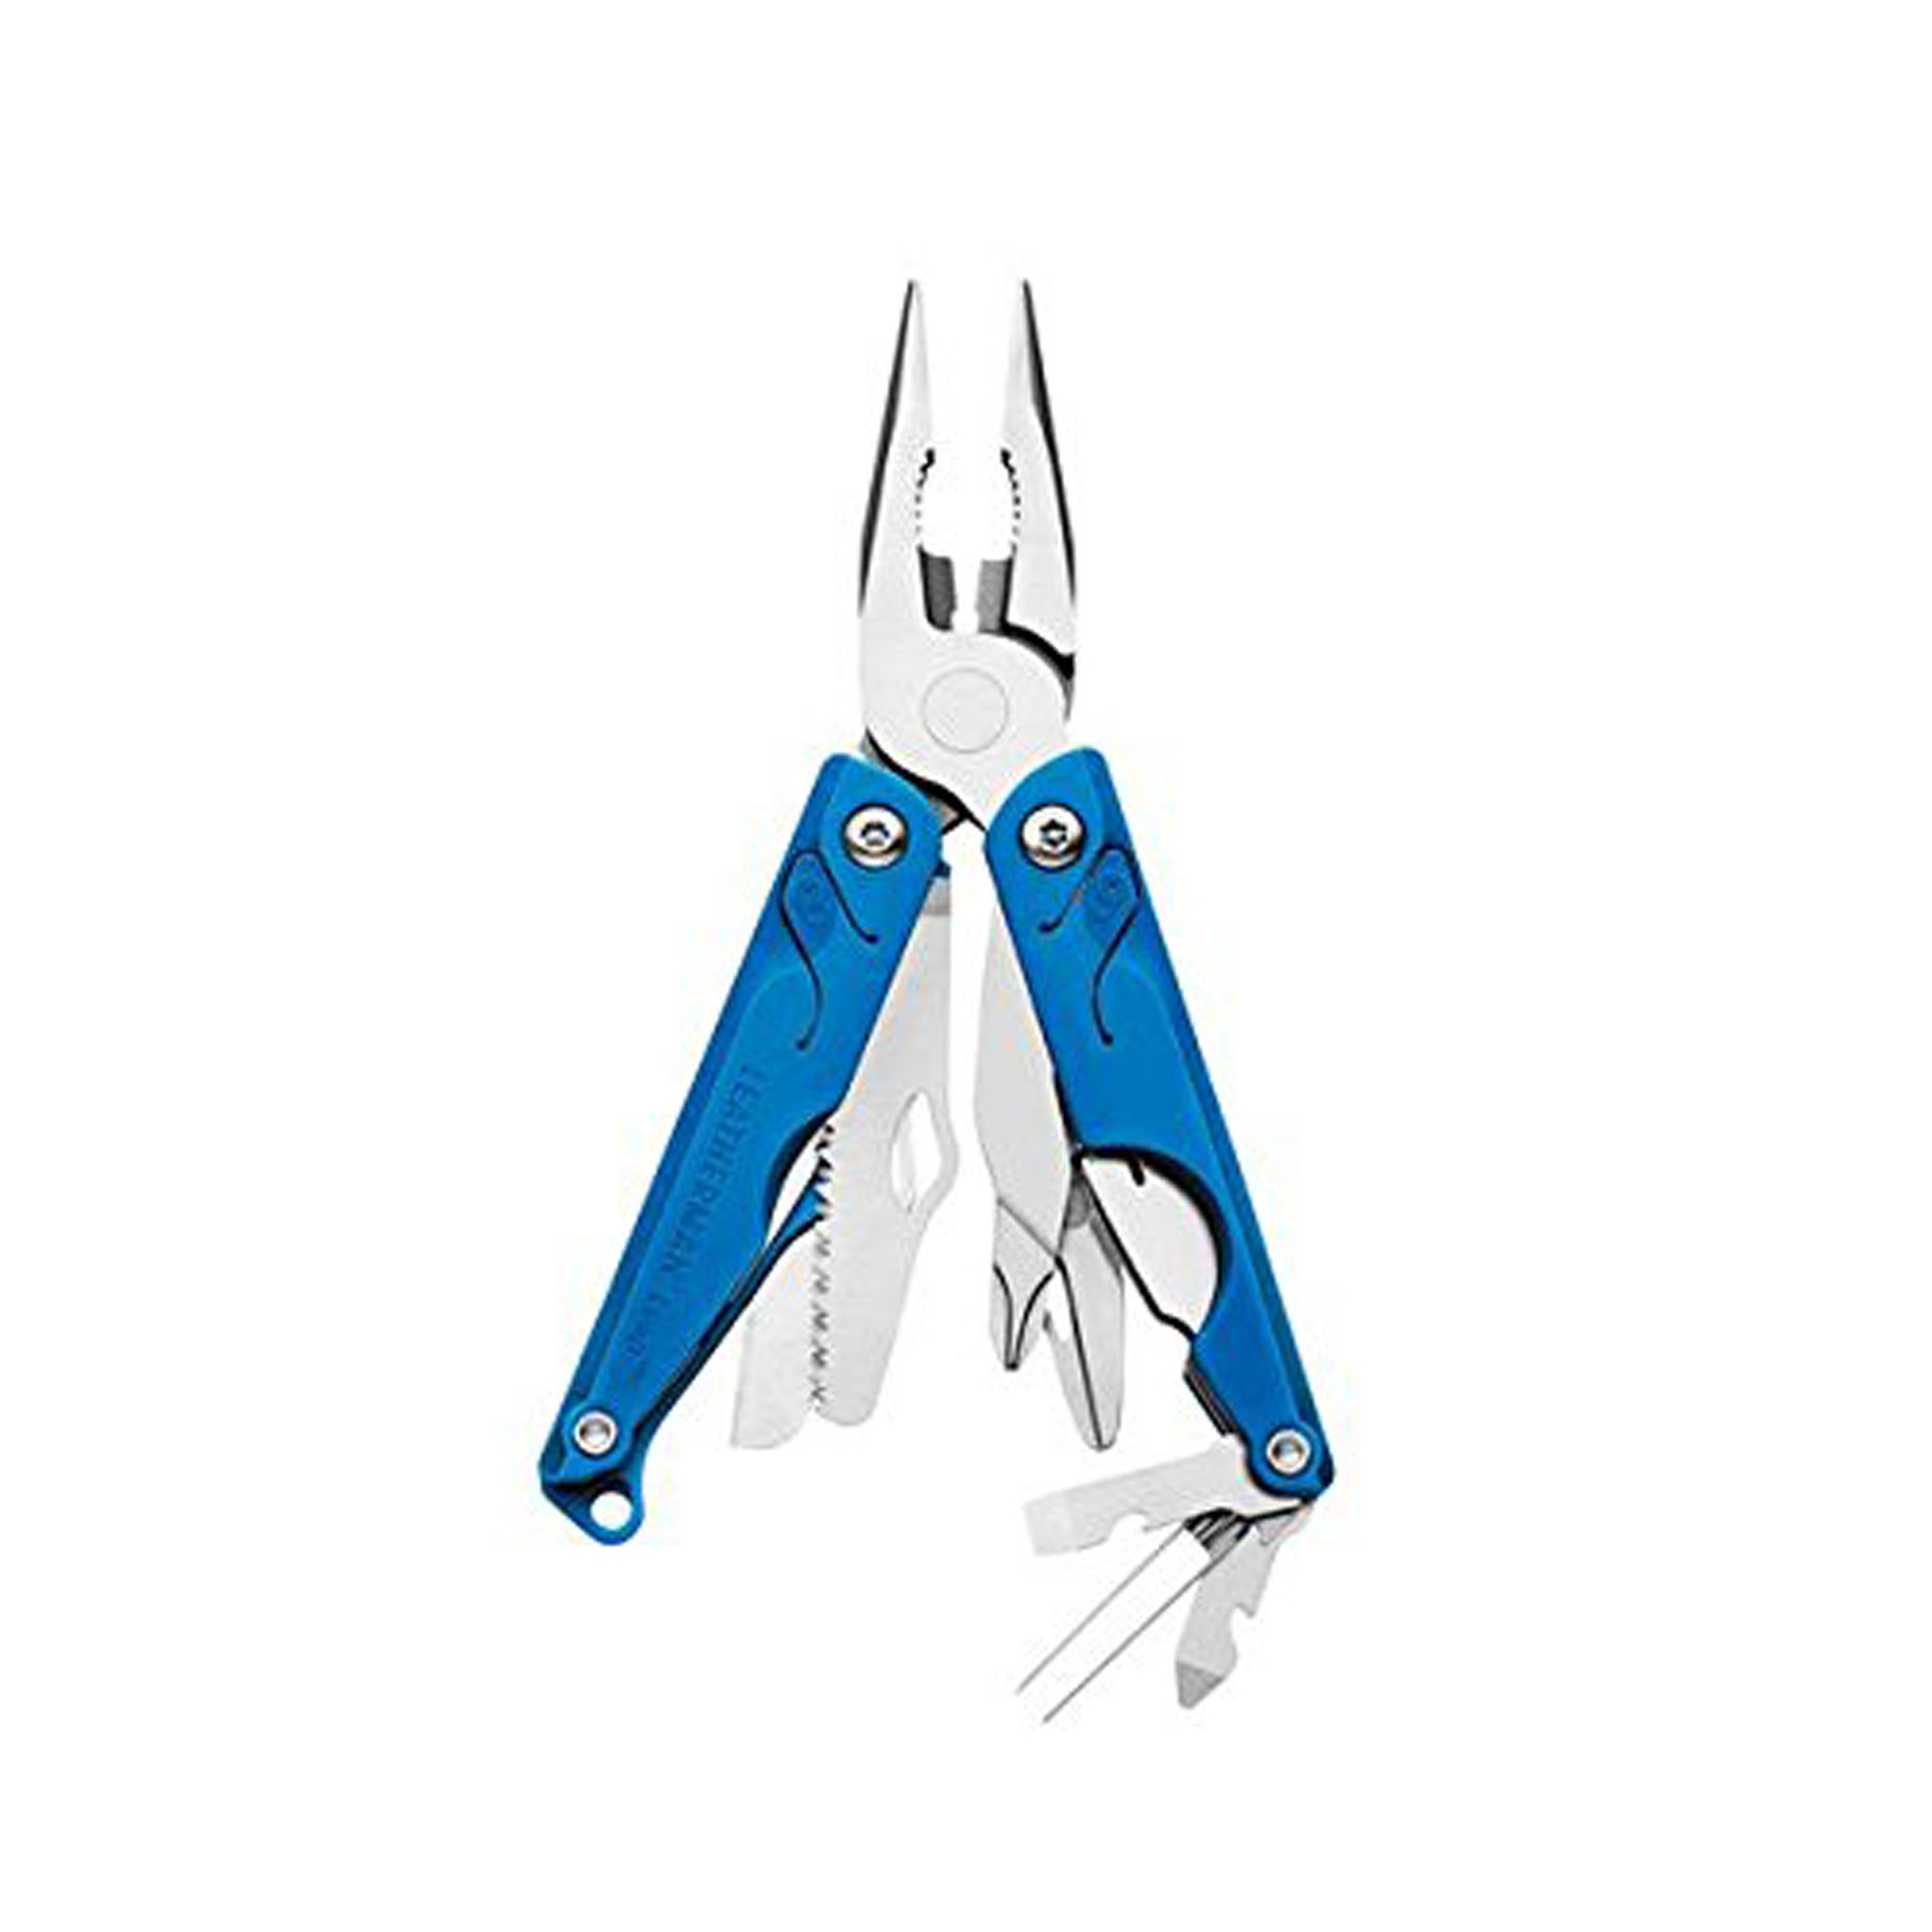 Leatherman - Leap, Multitool for Kids, Stainless Steel, Blue